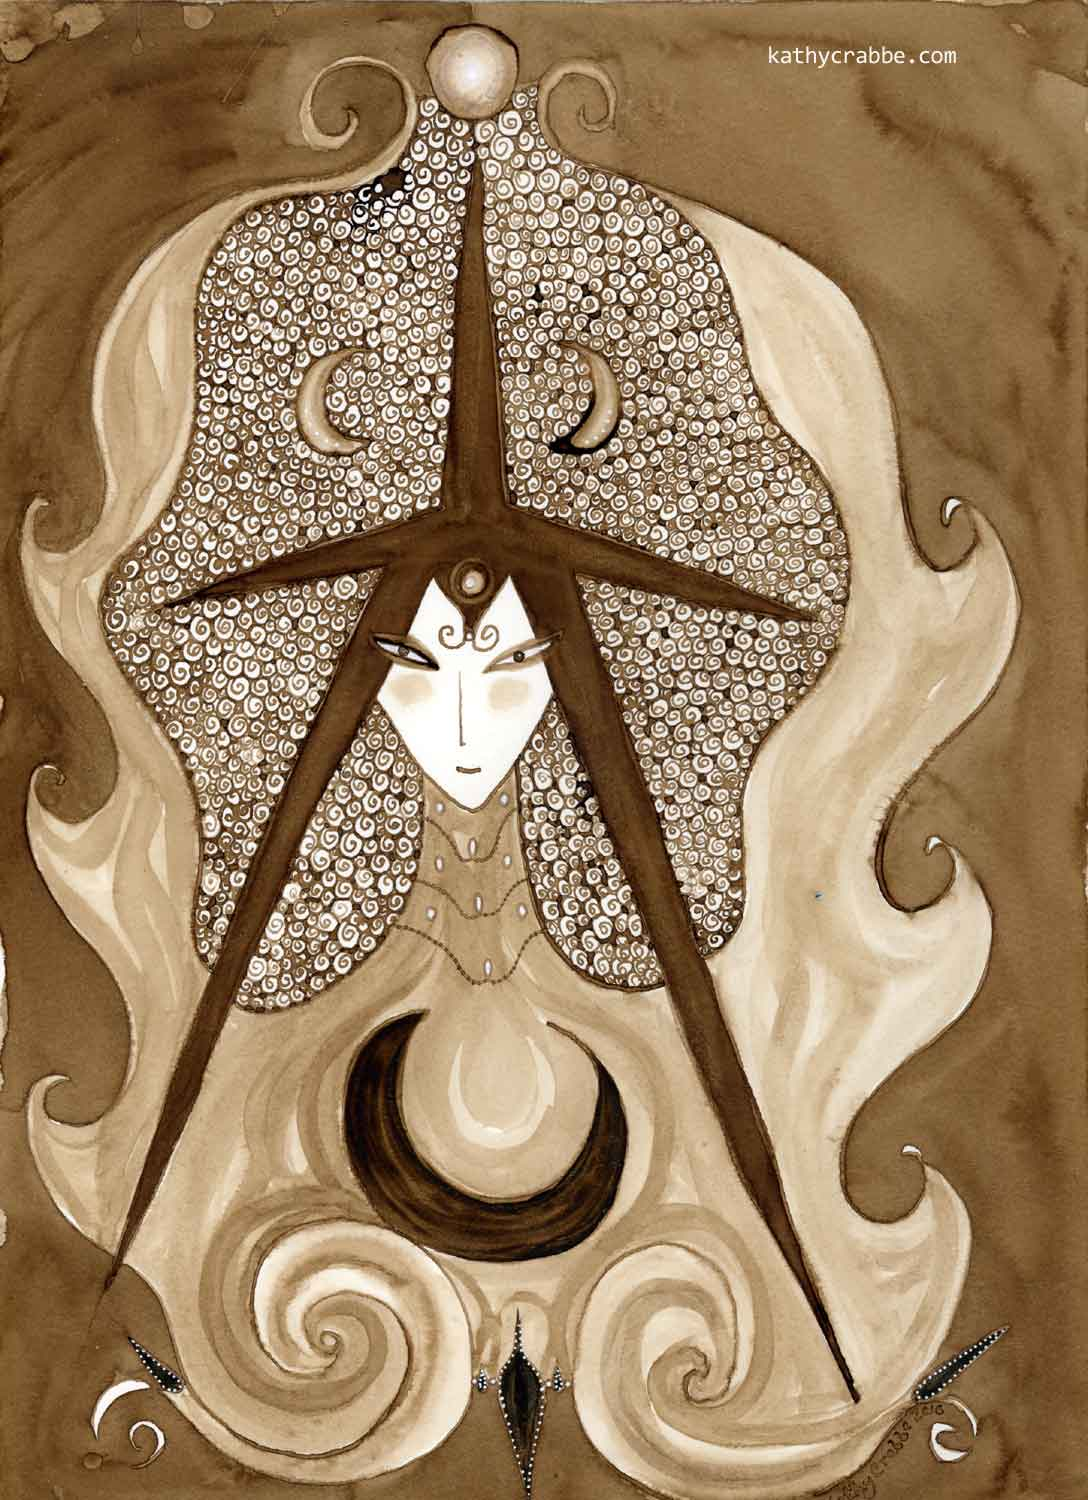 Fey Magick by Kathy Crabbe, watercolor on paper.